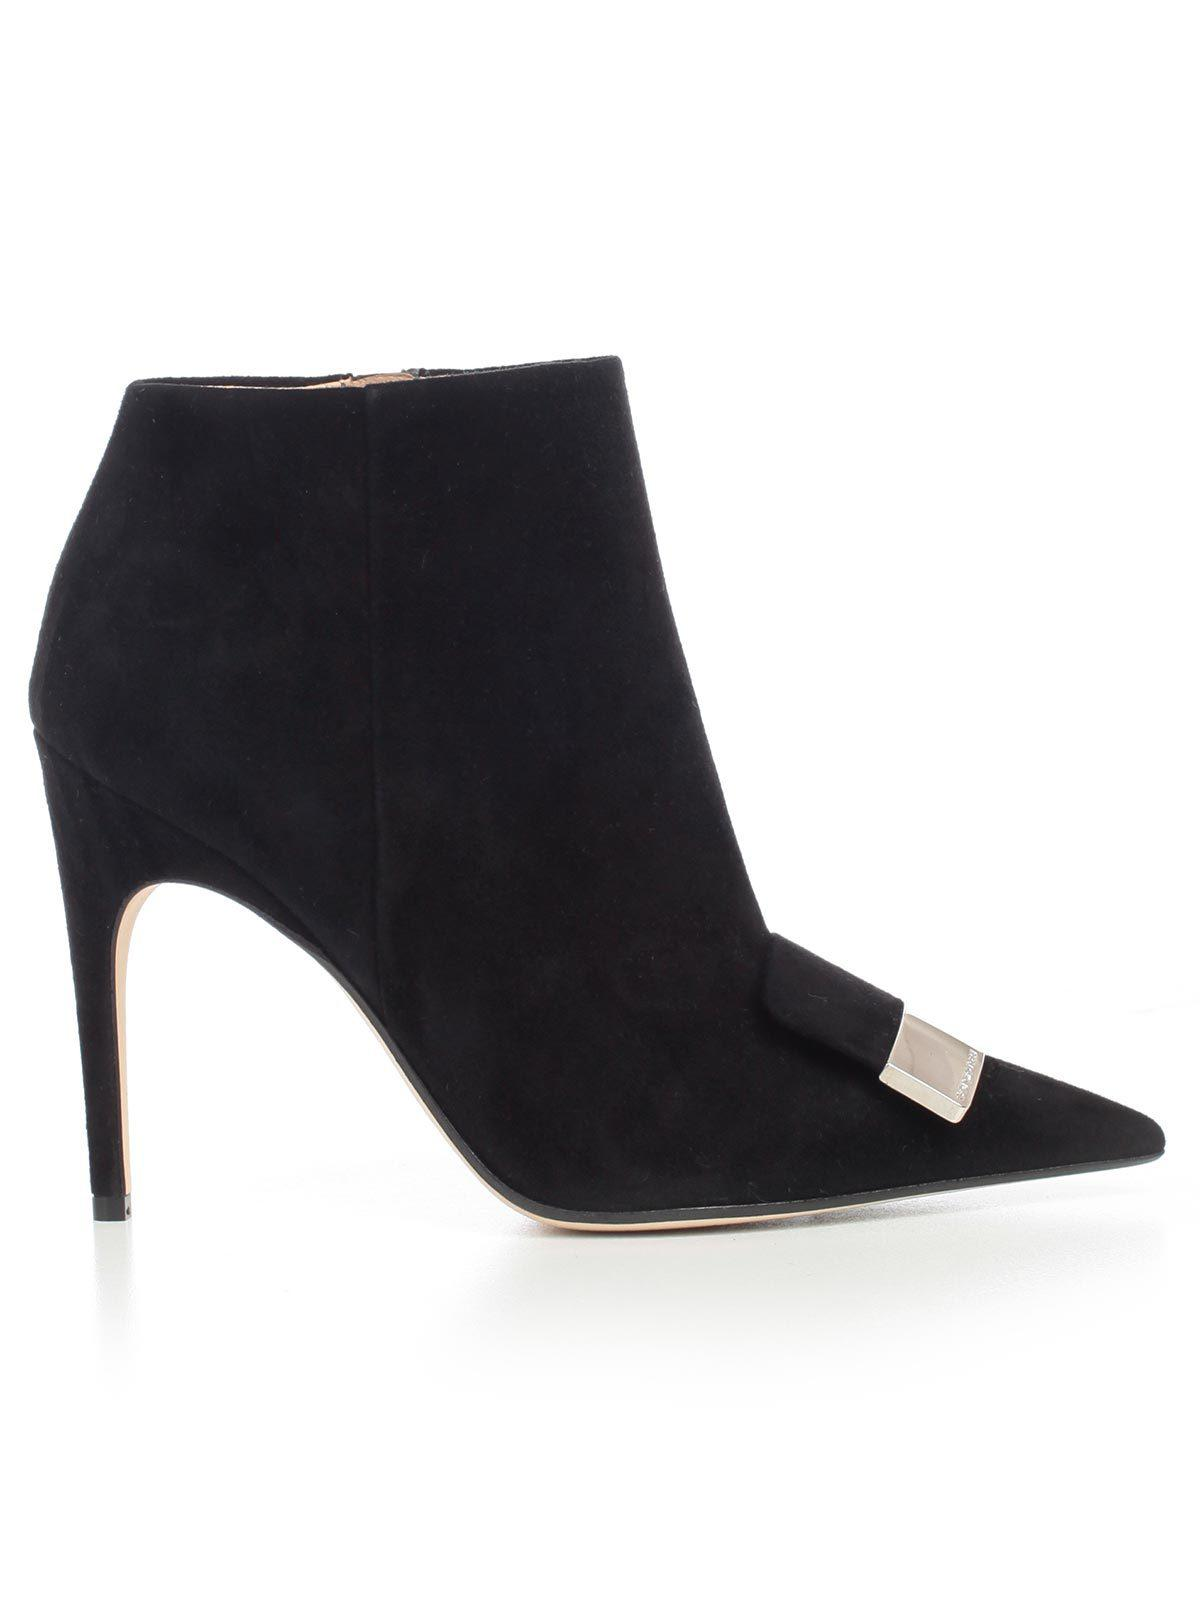 285450055f4 Sergio Rossi High-heels Ankle Boots in Black - Lyst